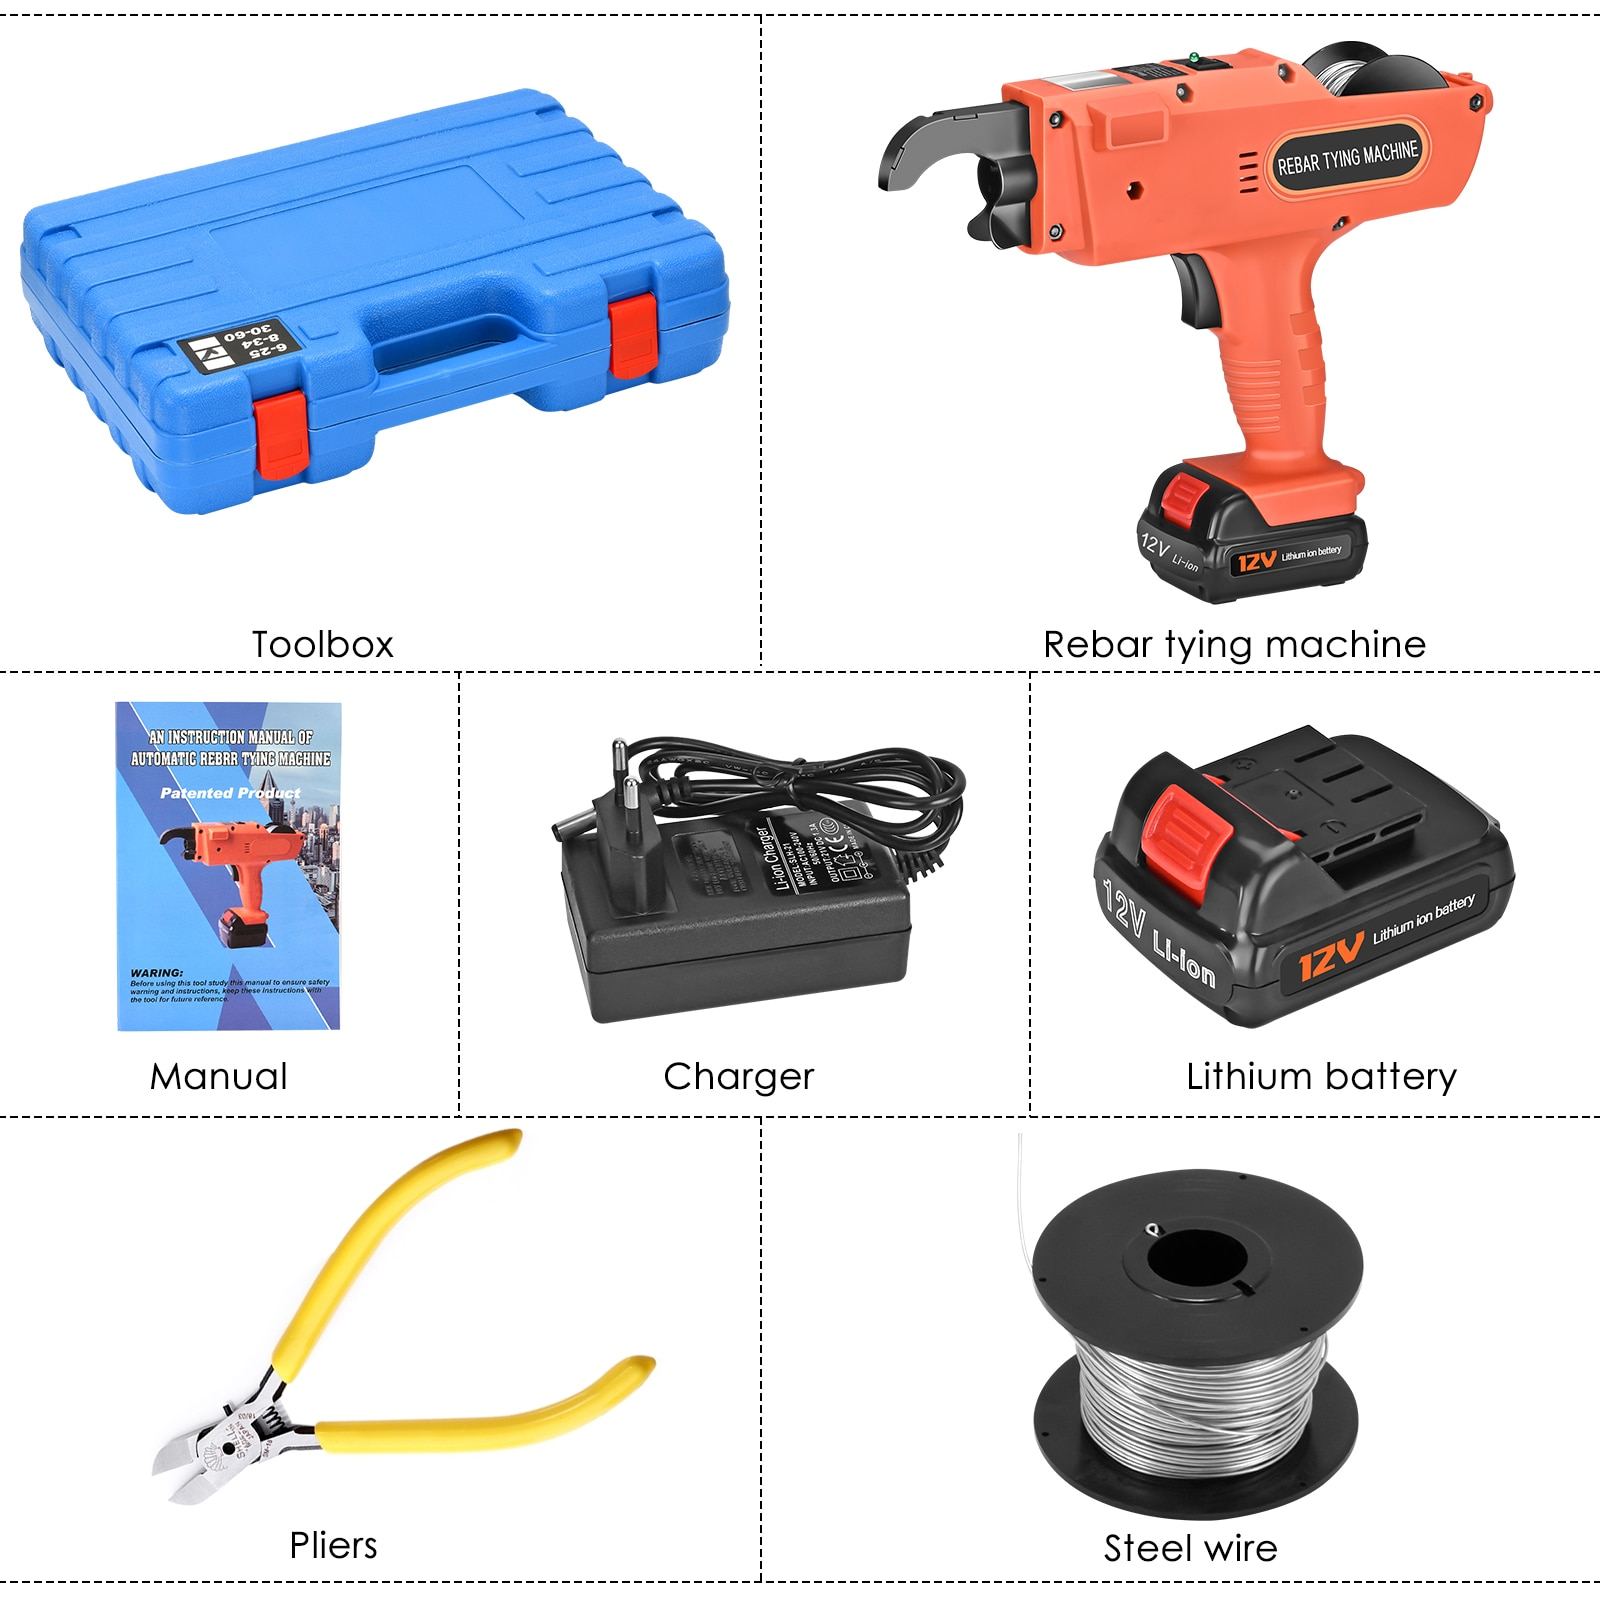 Rebar Tying Machine Automatic Rebar Tying Tool Handheld Rebar Tying Machine With 2 Batteries Used In Construction Projects enlarge